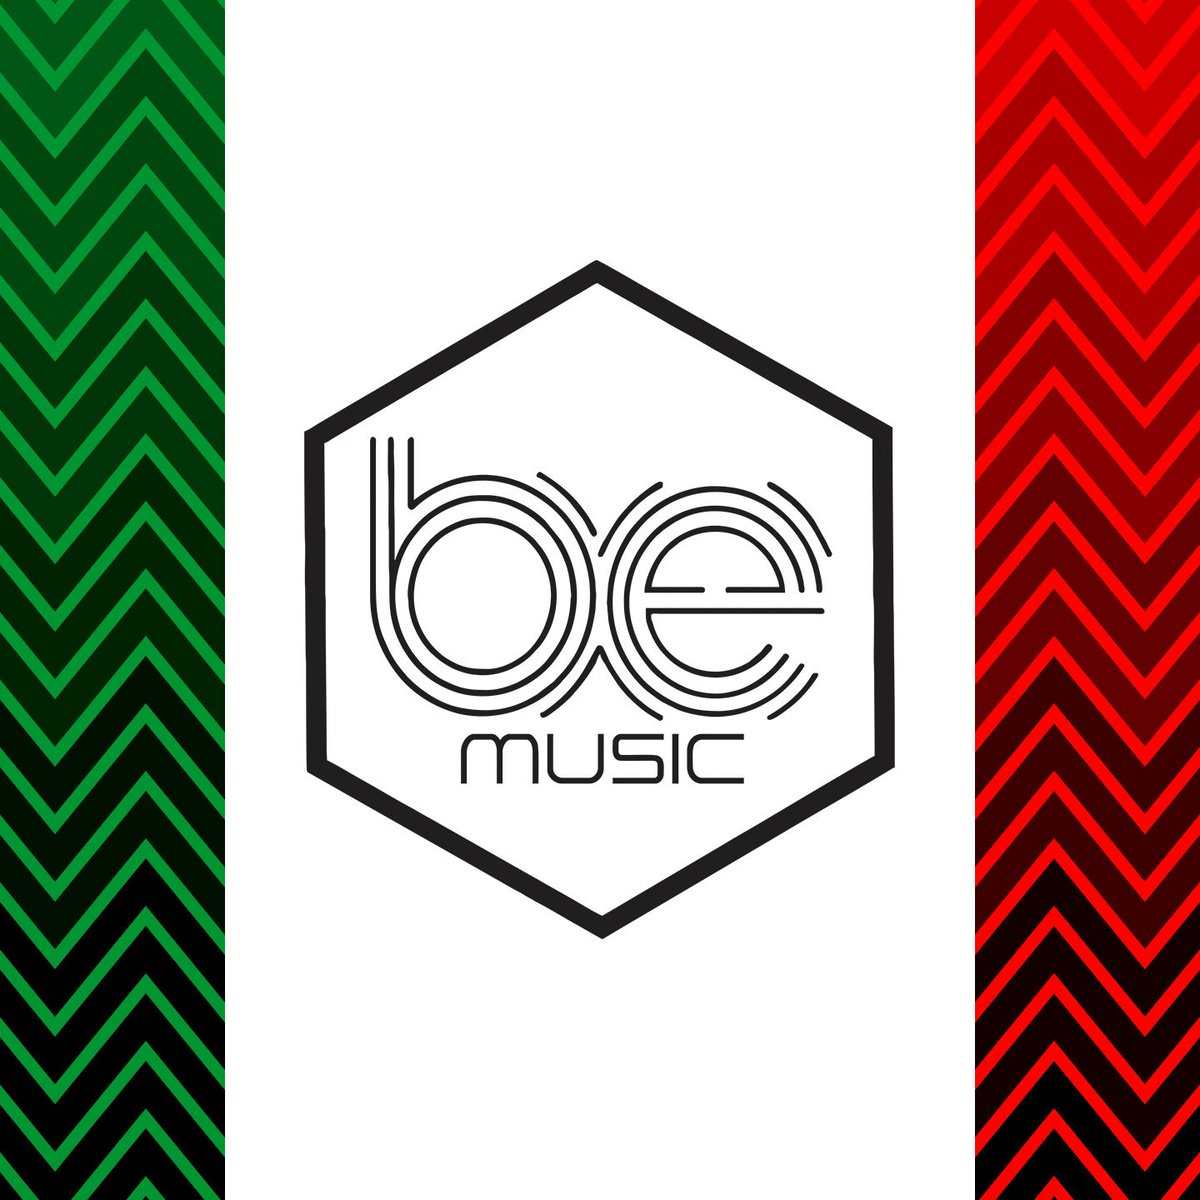 #BeMusicOnSpotify‼️  Dale play ▶️ #HechoenMéxico 🔊  ⚠️ https://t.co/n8...